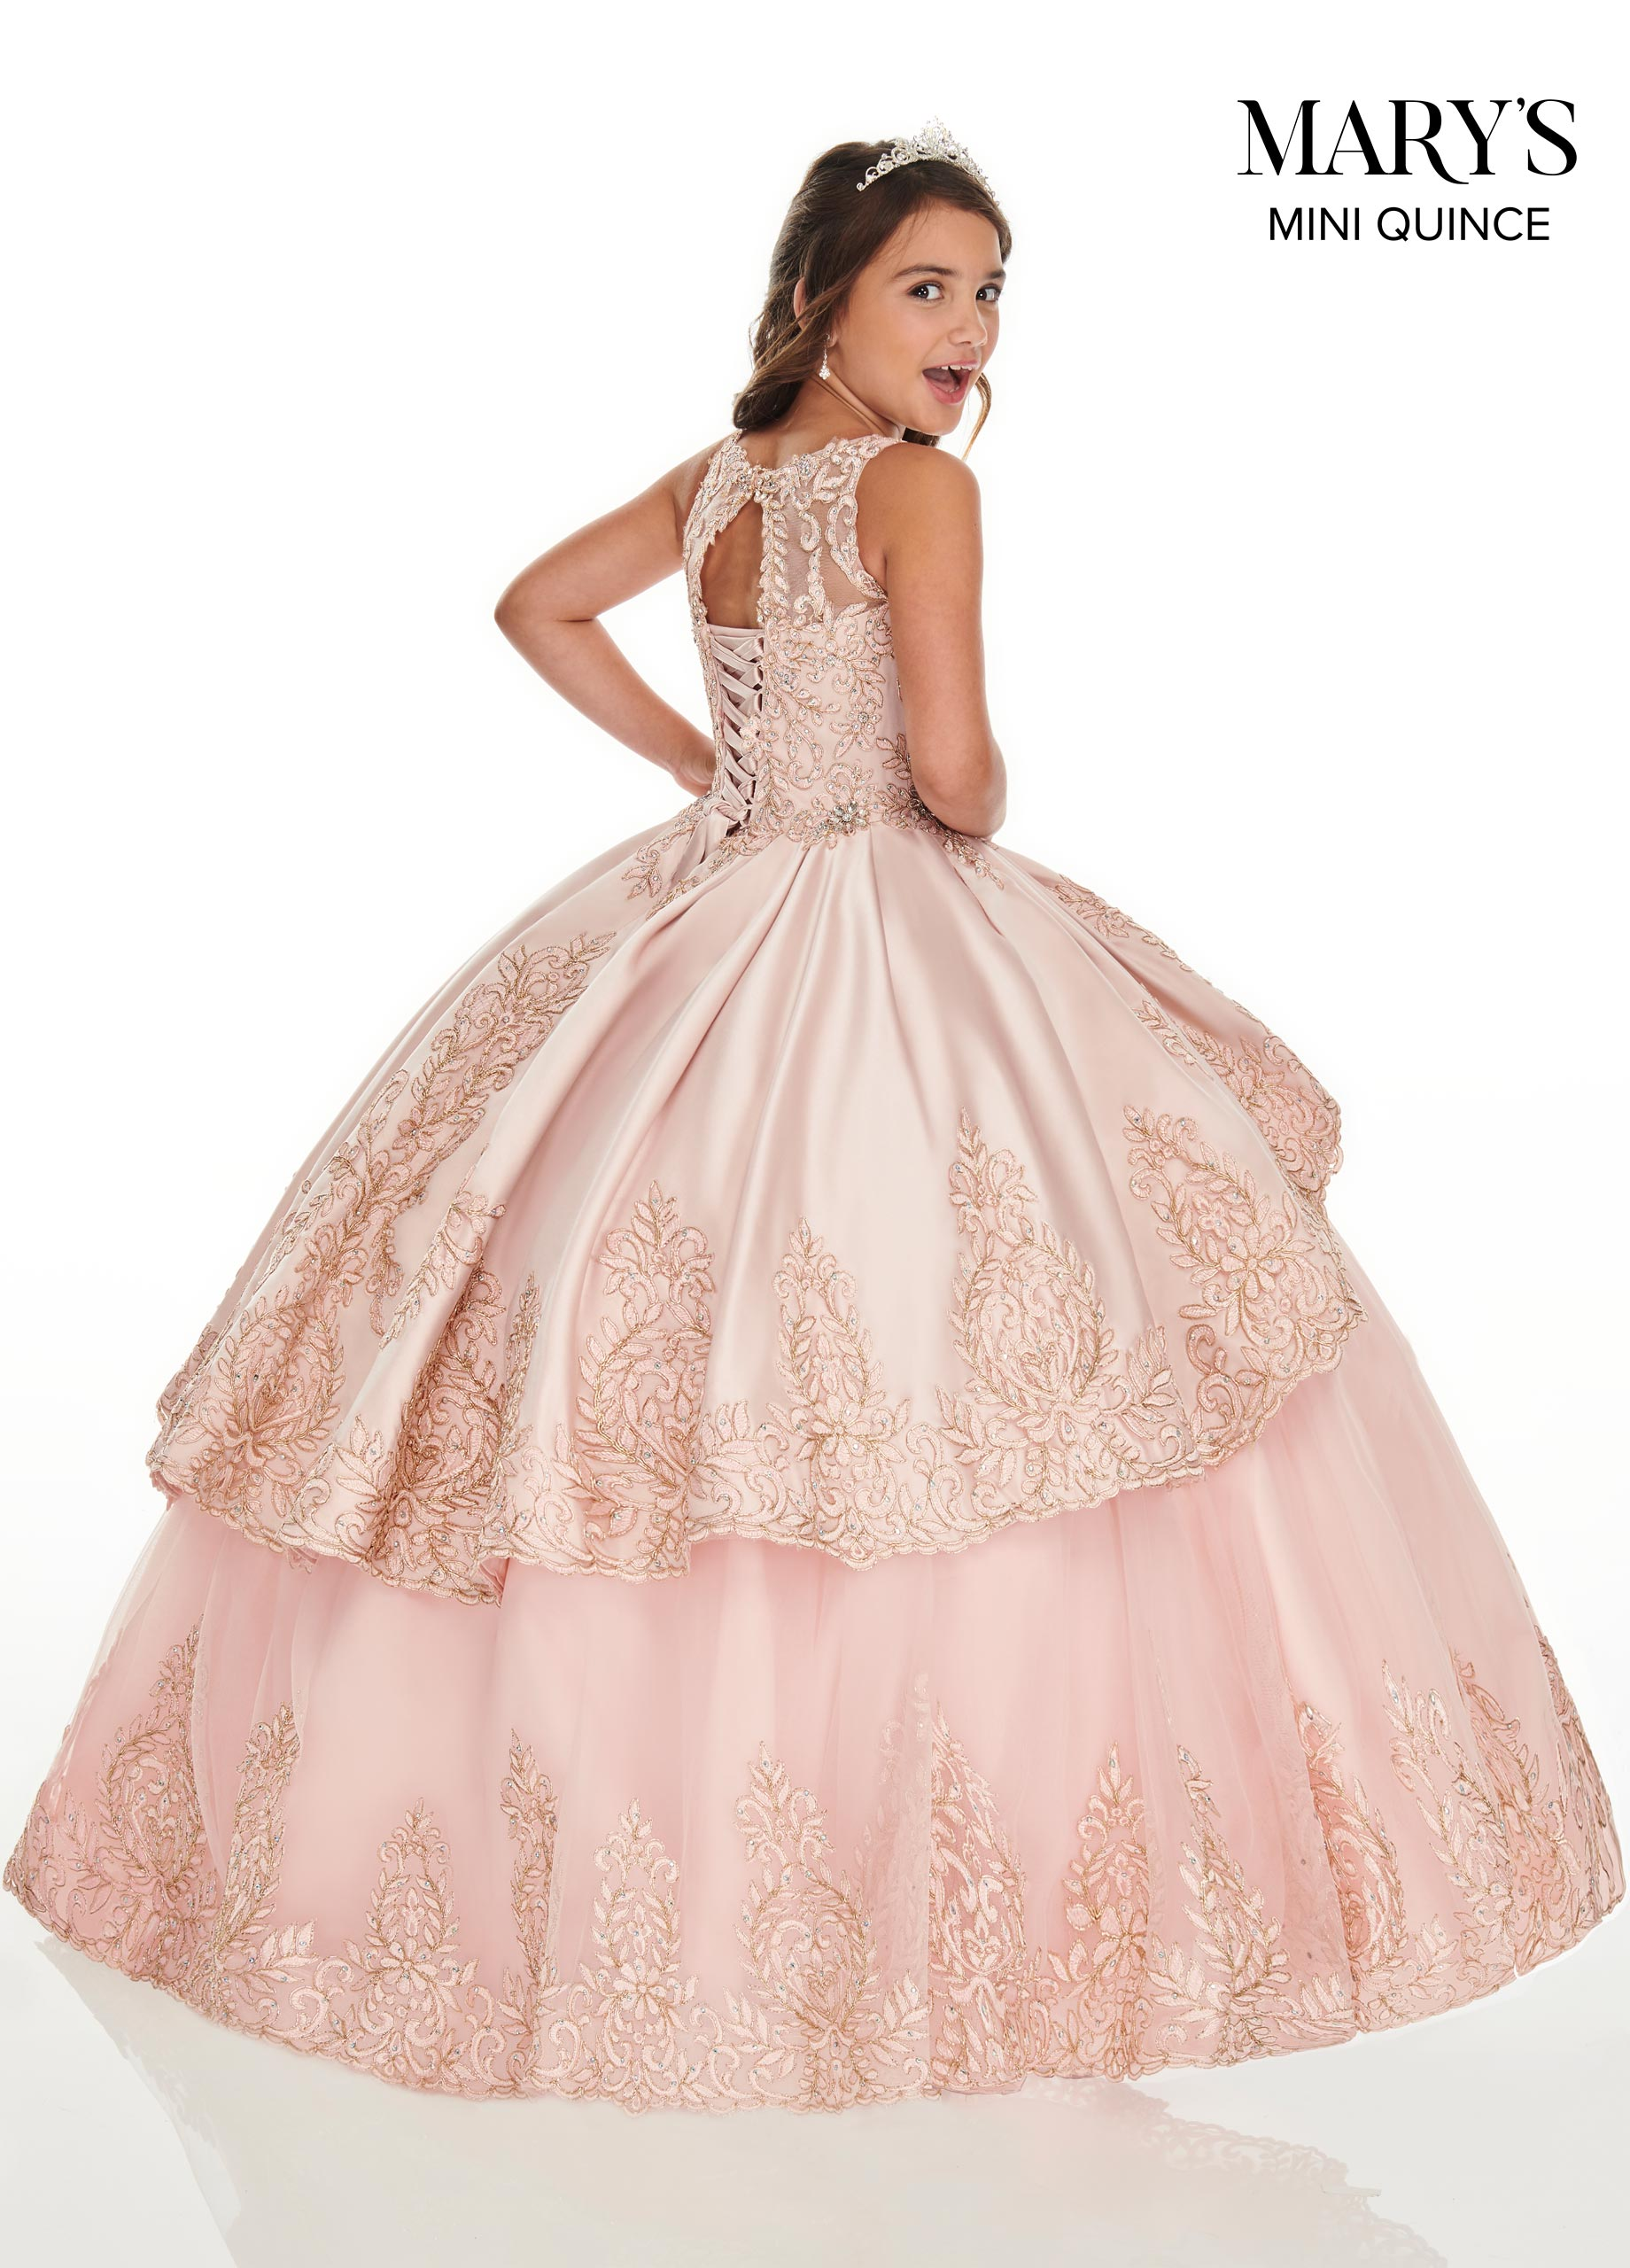 Little Quince Dresses | Mini Quince | Style - MQ4021